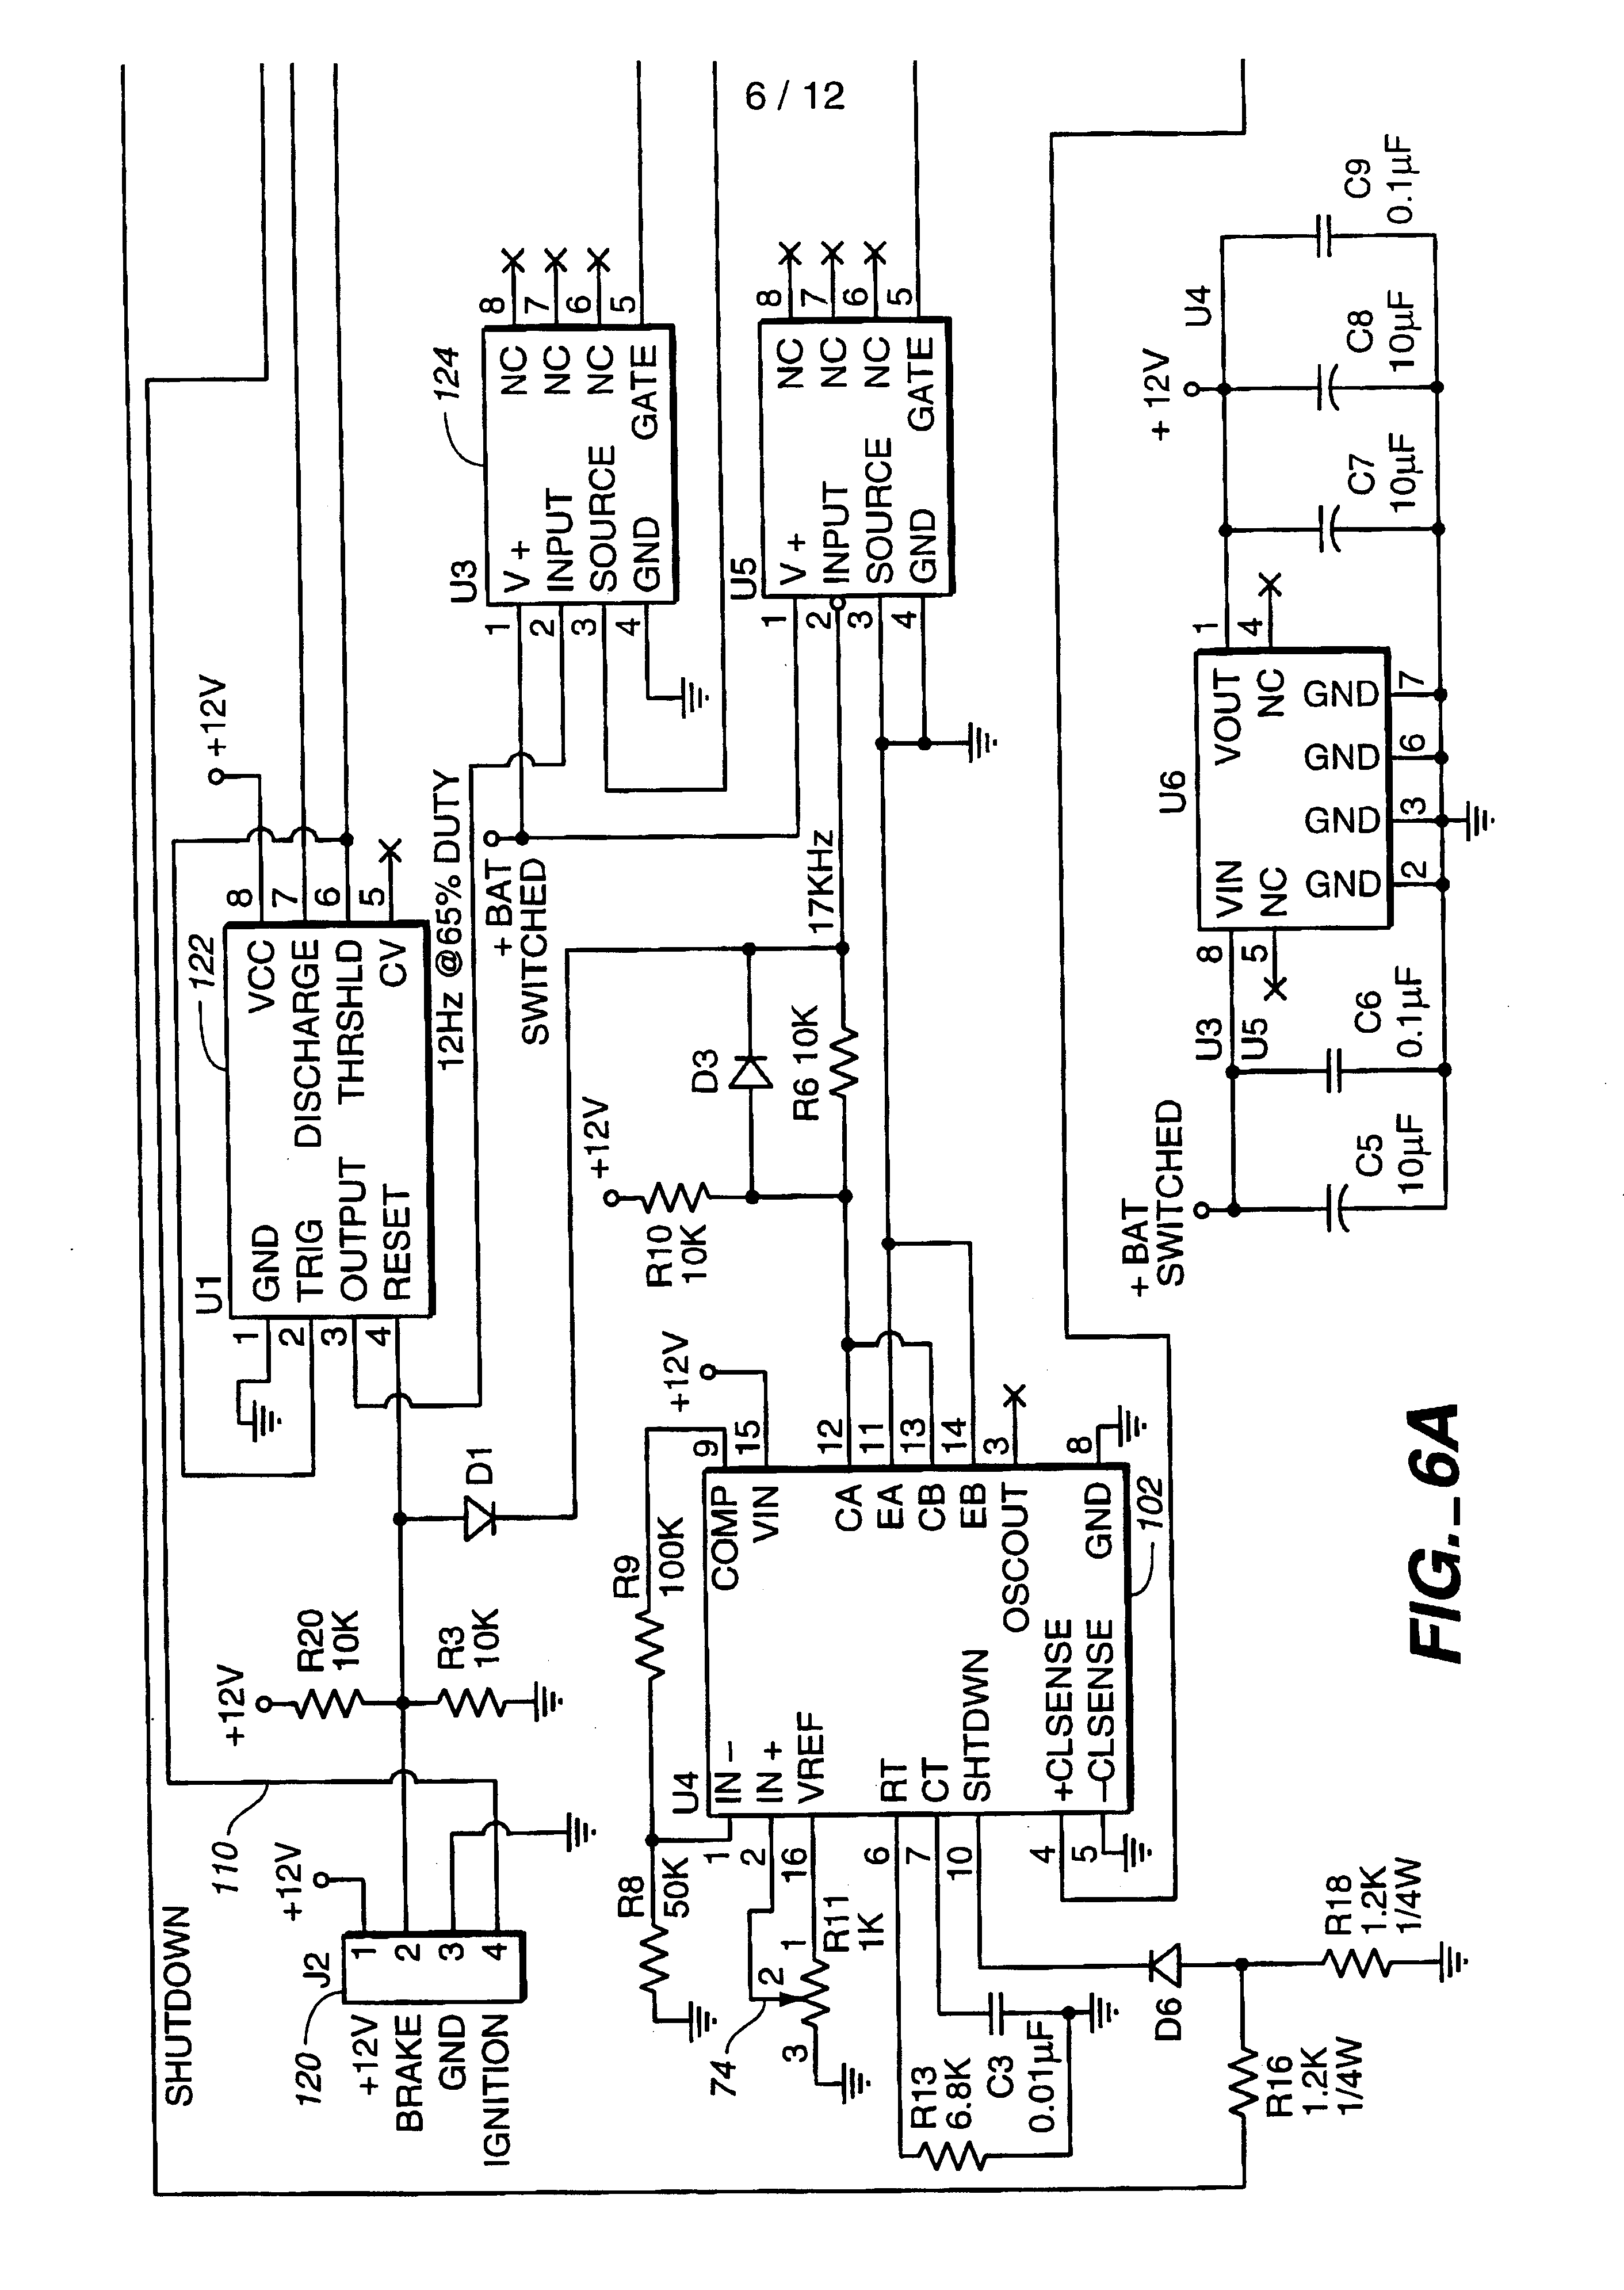 Wiring Harness For Mobility Go Go Ultra together with Harley Throttle Cable Diagram as well 2006 Nissan Altima Belt Diagram additionally Throttle Pot Wiring Diagram also Hydraulic Jack Diagram. on electric scooter throttle wiring diagram